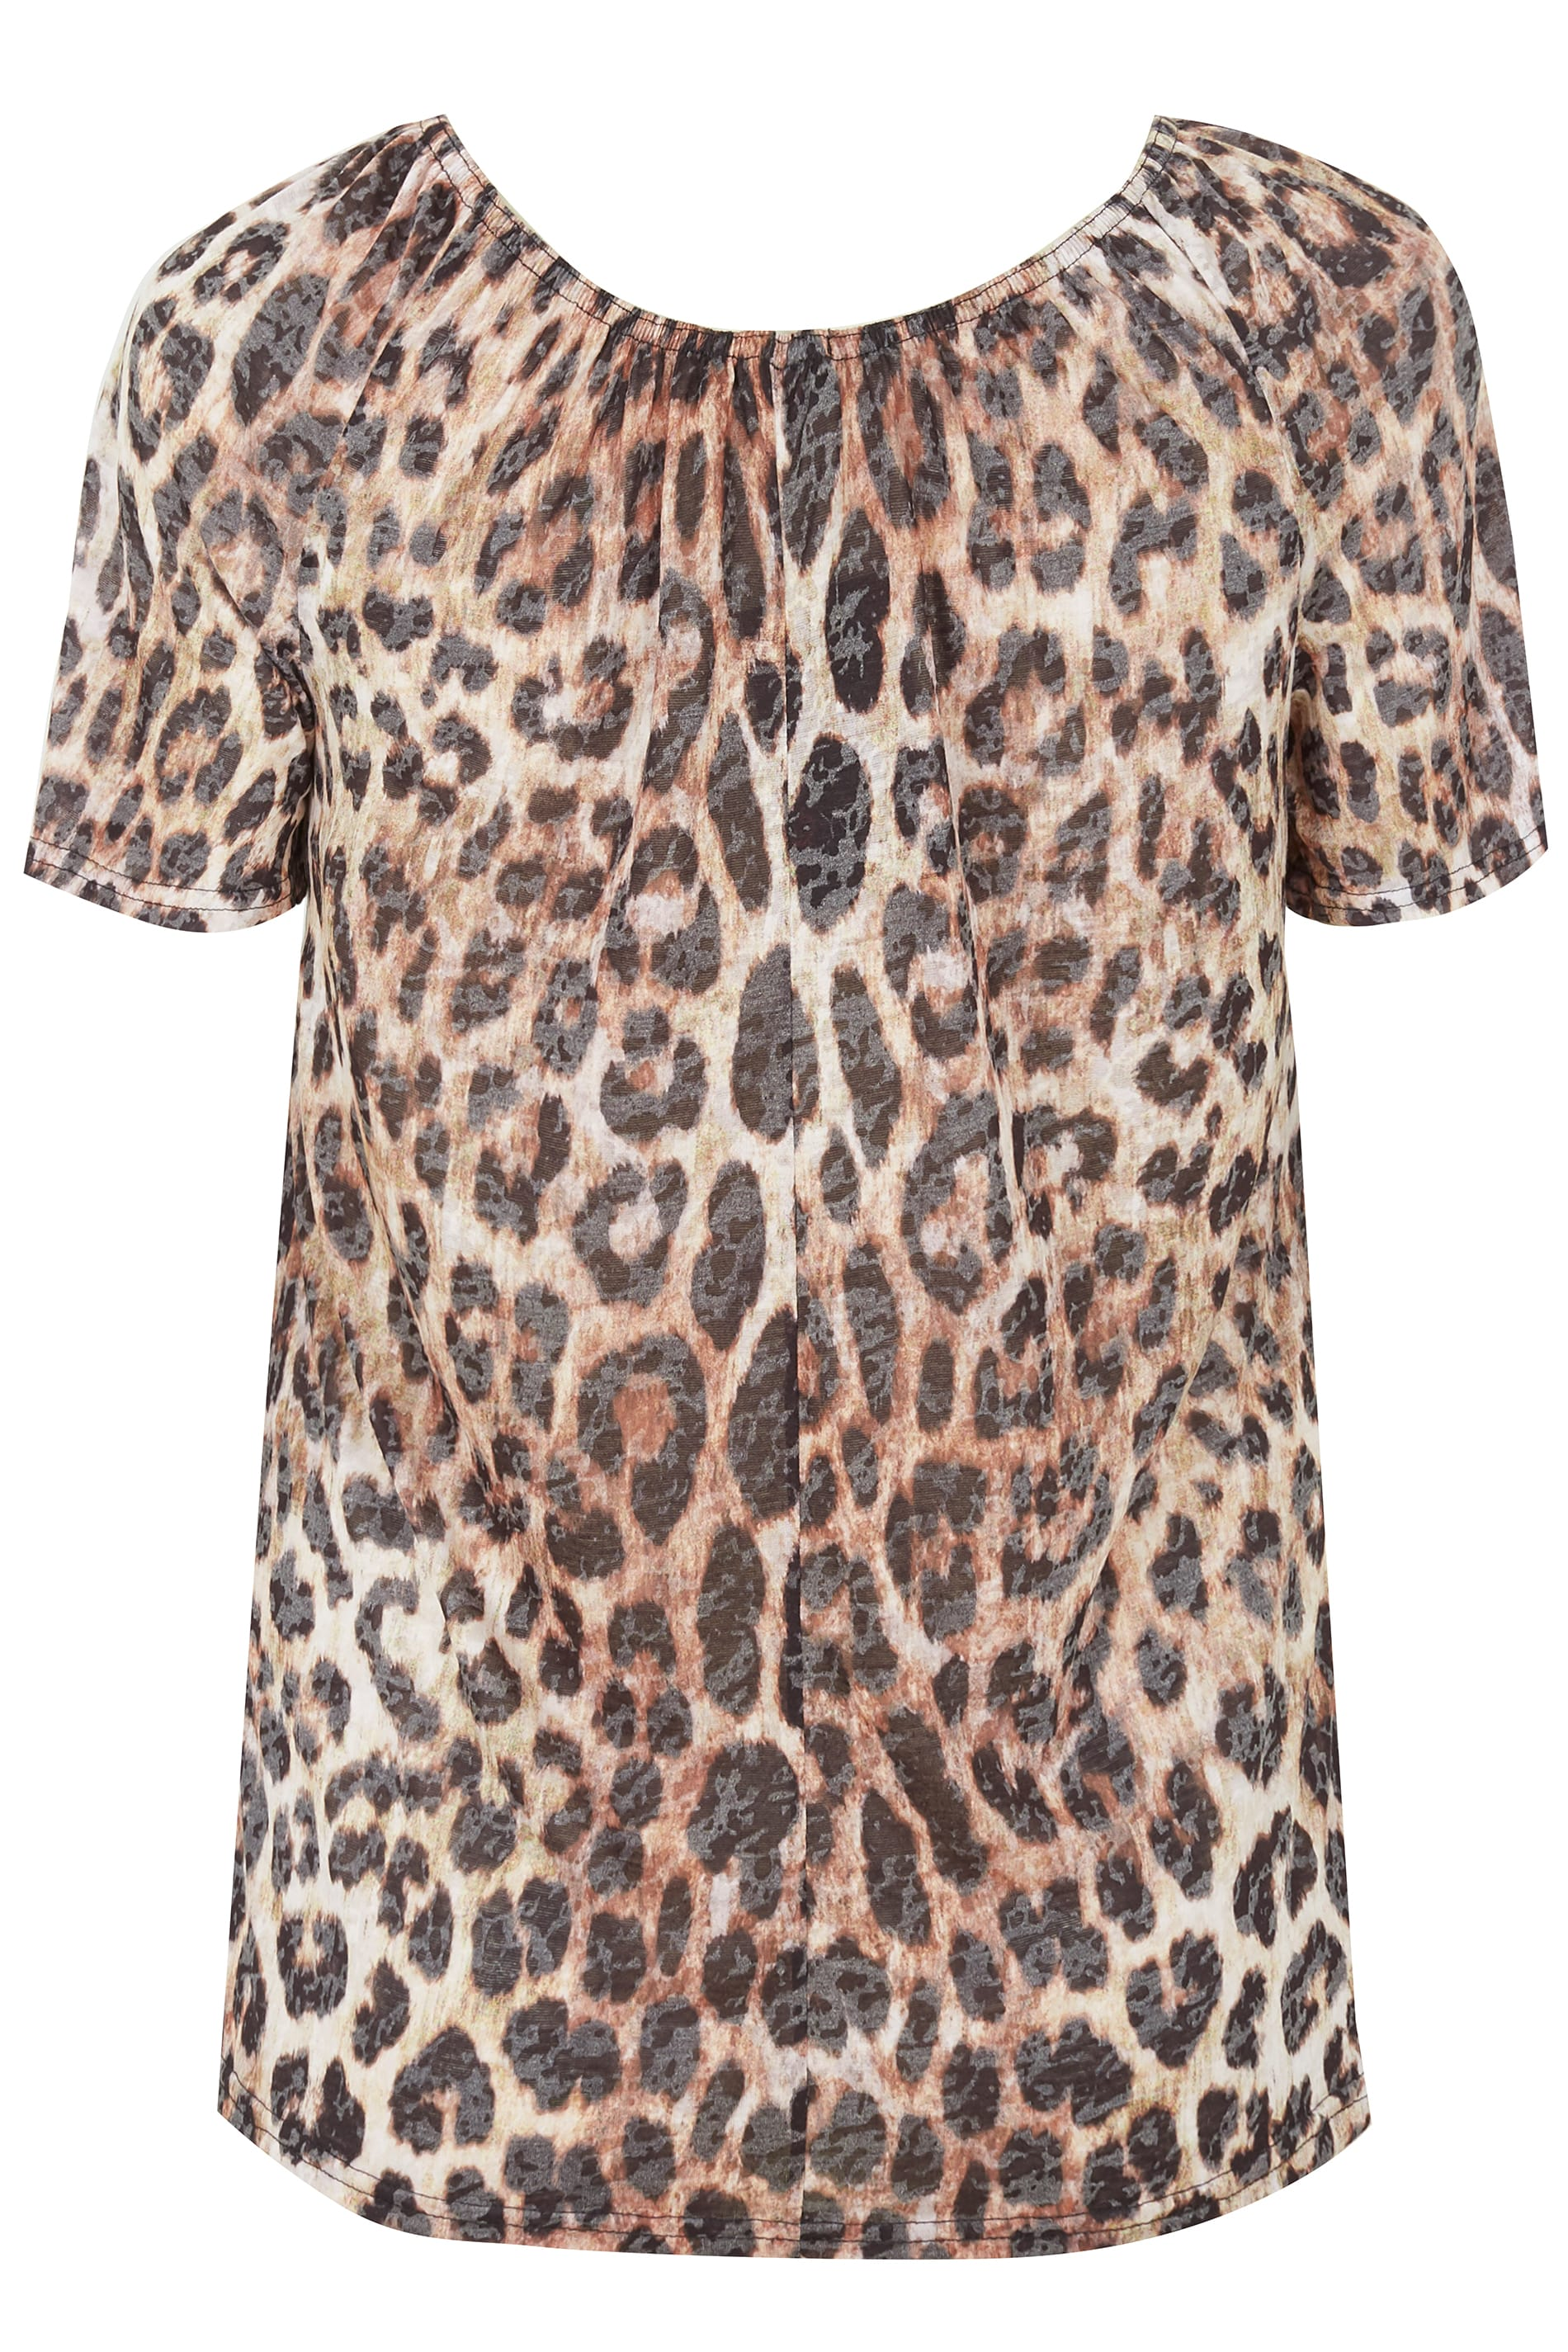 7da219468838 Leopard Print Gypsy Top, plus size 16 to 36